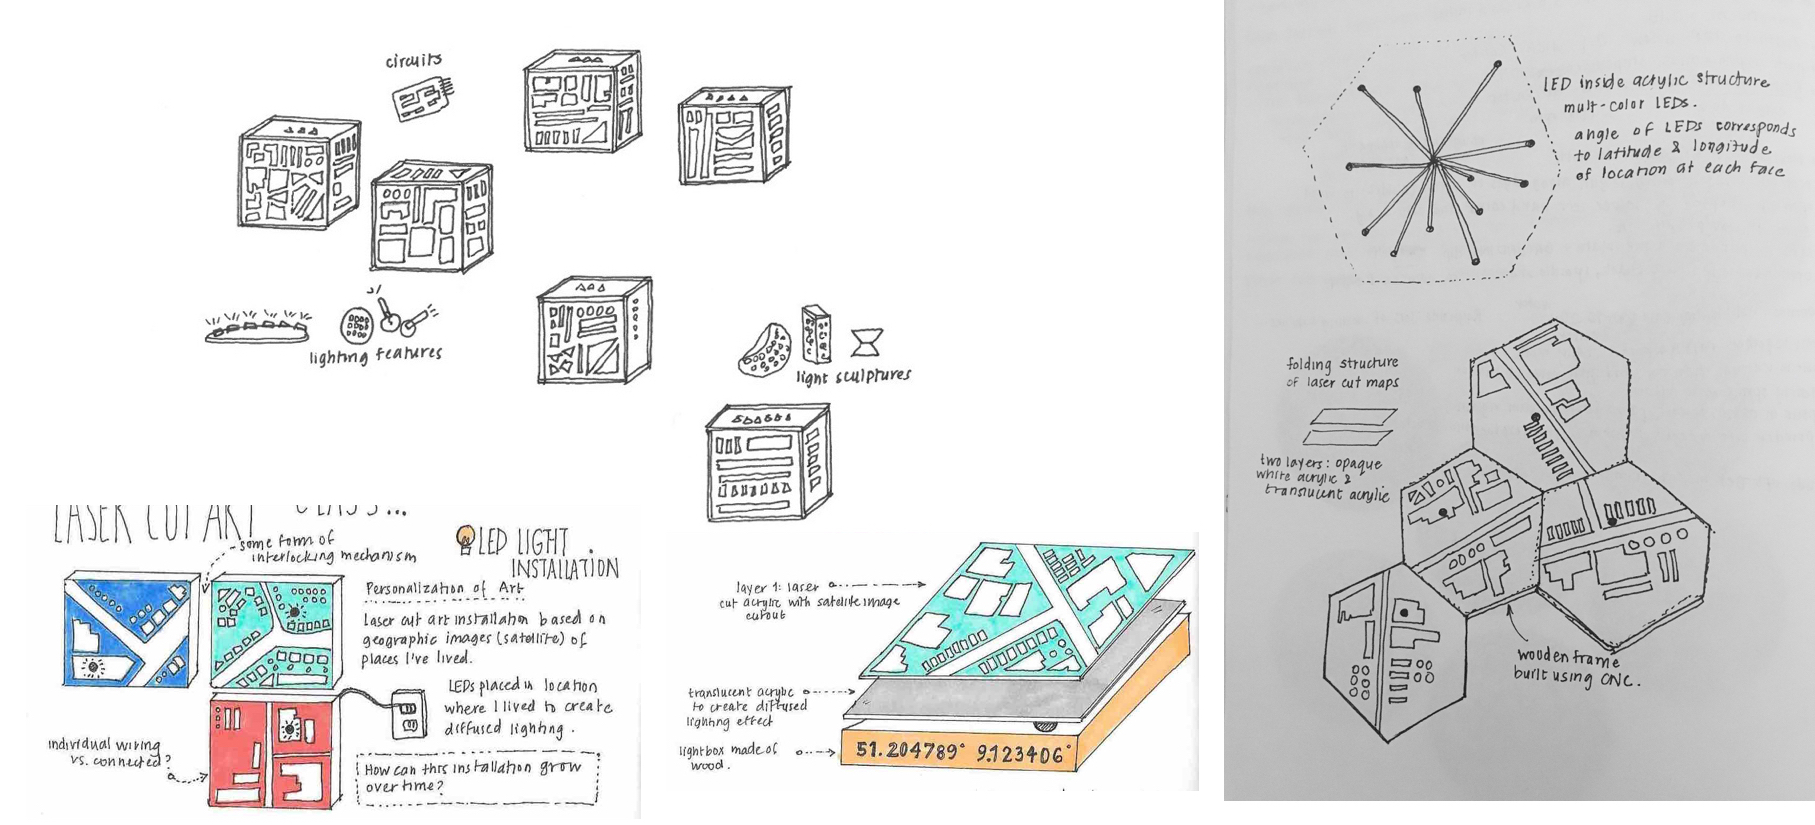 Nikhita Singh Final Project City Blocks The Same Instructables Page Also Gives A Circuit For Single Flashing Above Is Few Snapshots From Various Brainstorms I Went Through To Come Up With Idea Initially Was Planning On Making Them Into Thin Frame Like